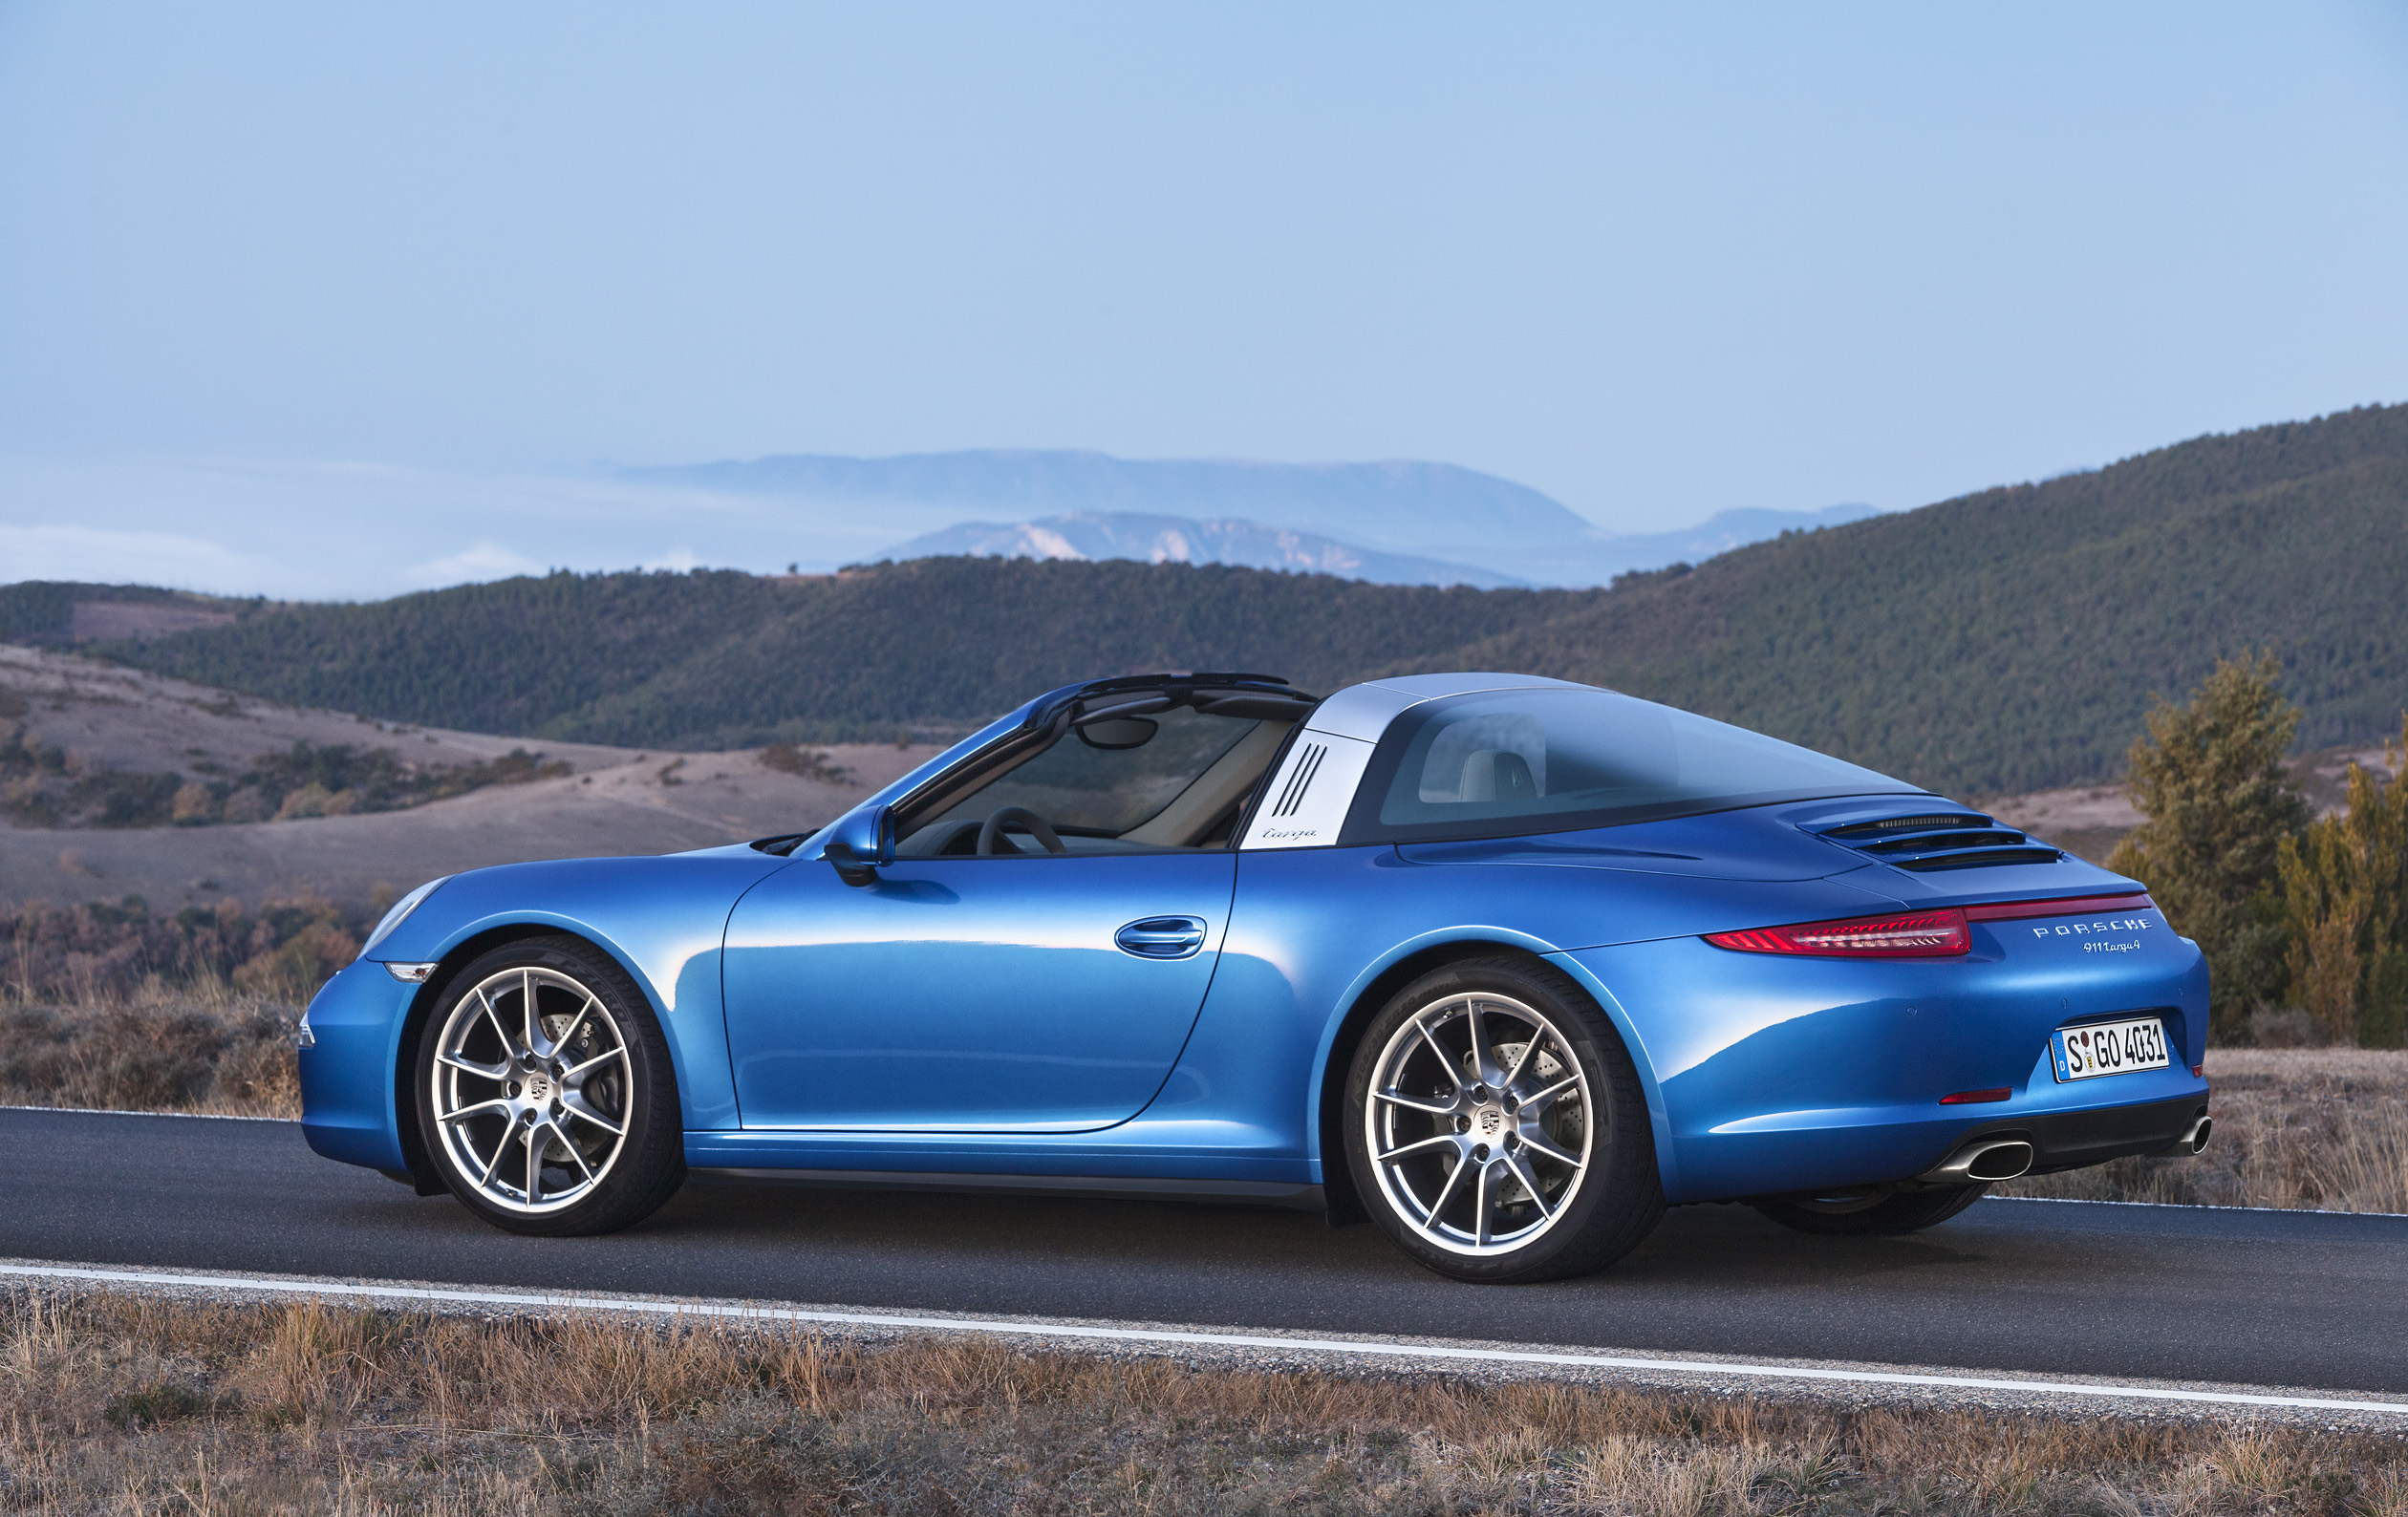 New Porsche 911 Targa 2014 Bhp Cars Performance